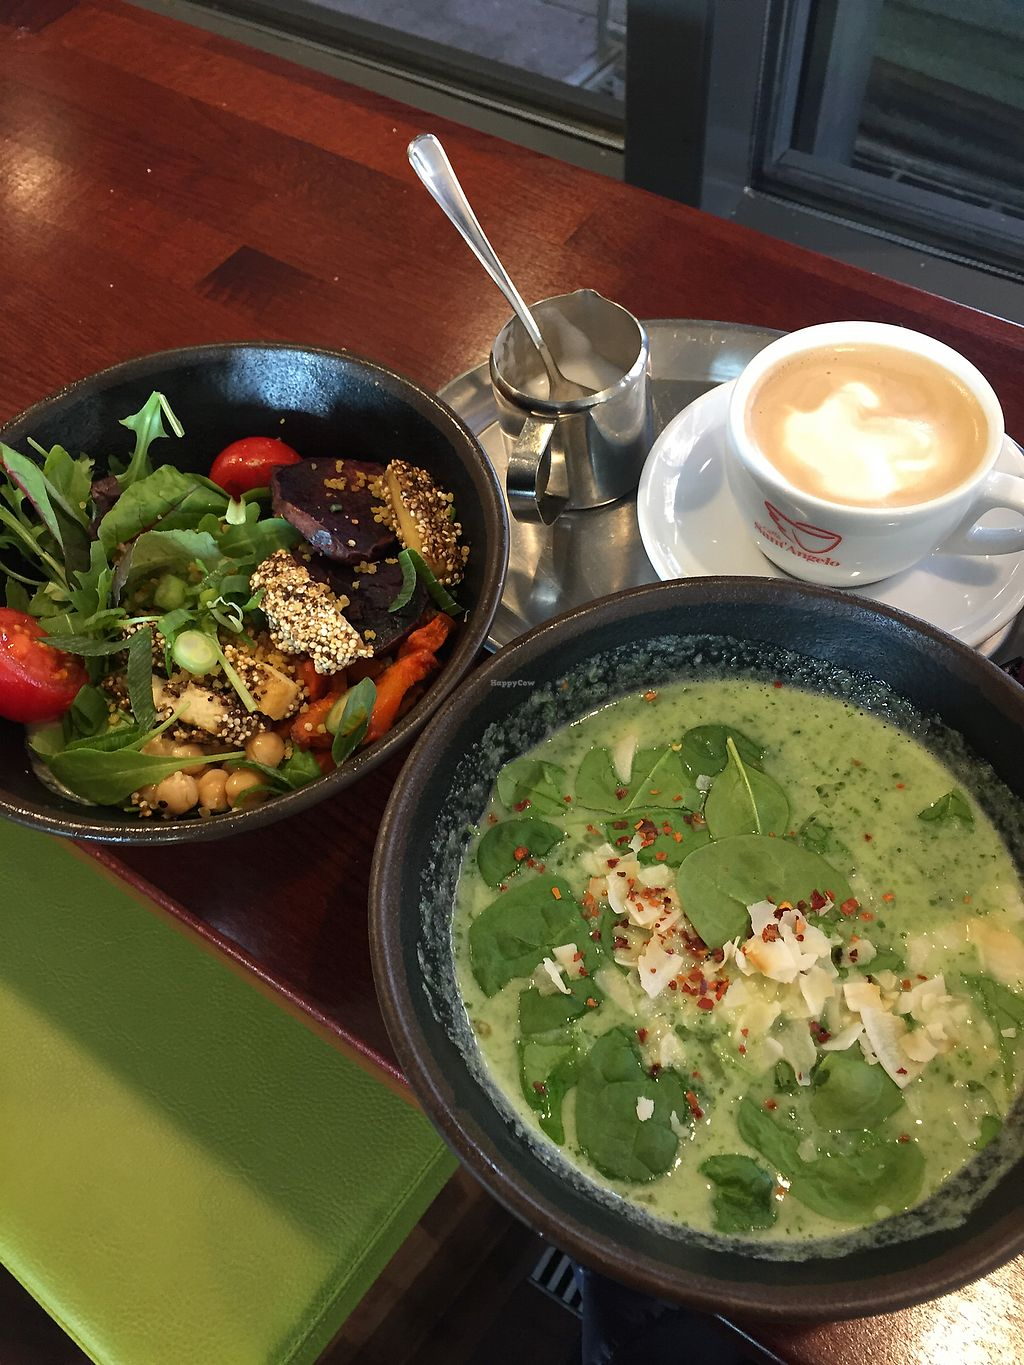 "Photo of Weilands Wellfood  by <a href=""/members/profile/emilysings5"">emilysings5</a> <br/>Spinach coconut milk soup and vegan crunchy tofu bowl <br/> January 15, 2018  - <a href='/contact/abuse/image/109574/347014'>Report</a>"